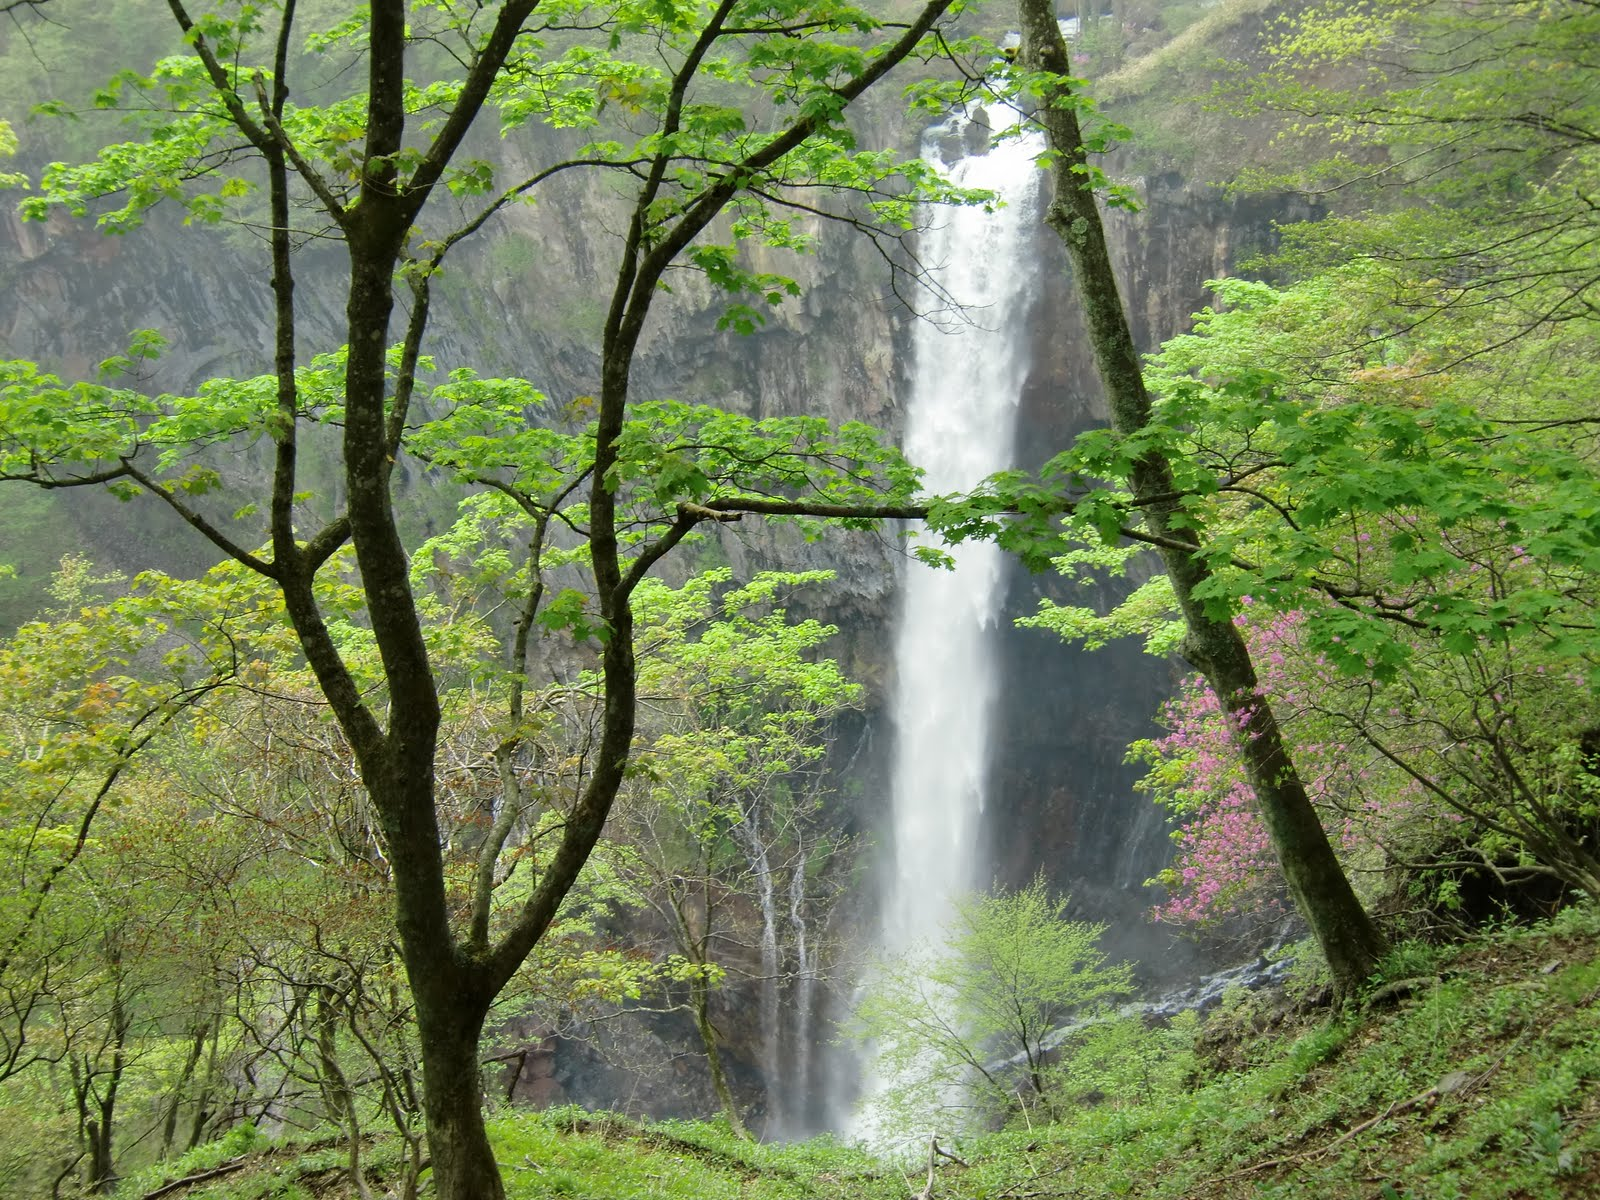 Kegon Waterfall, Suicide Most Beautiful Places in Japan